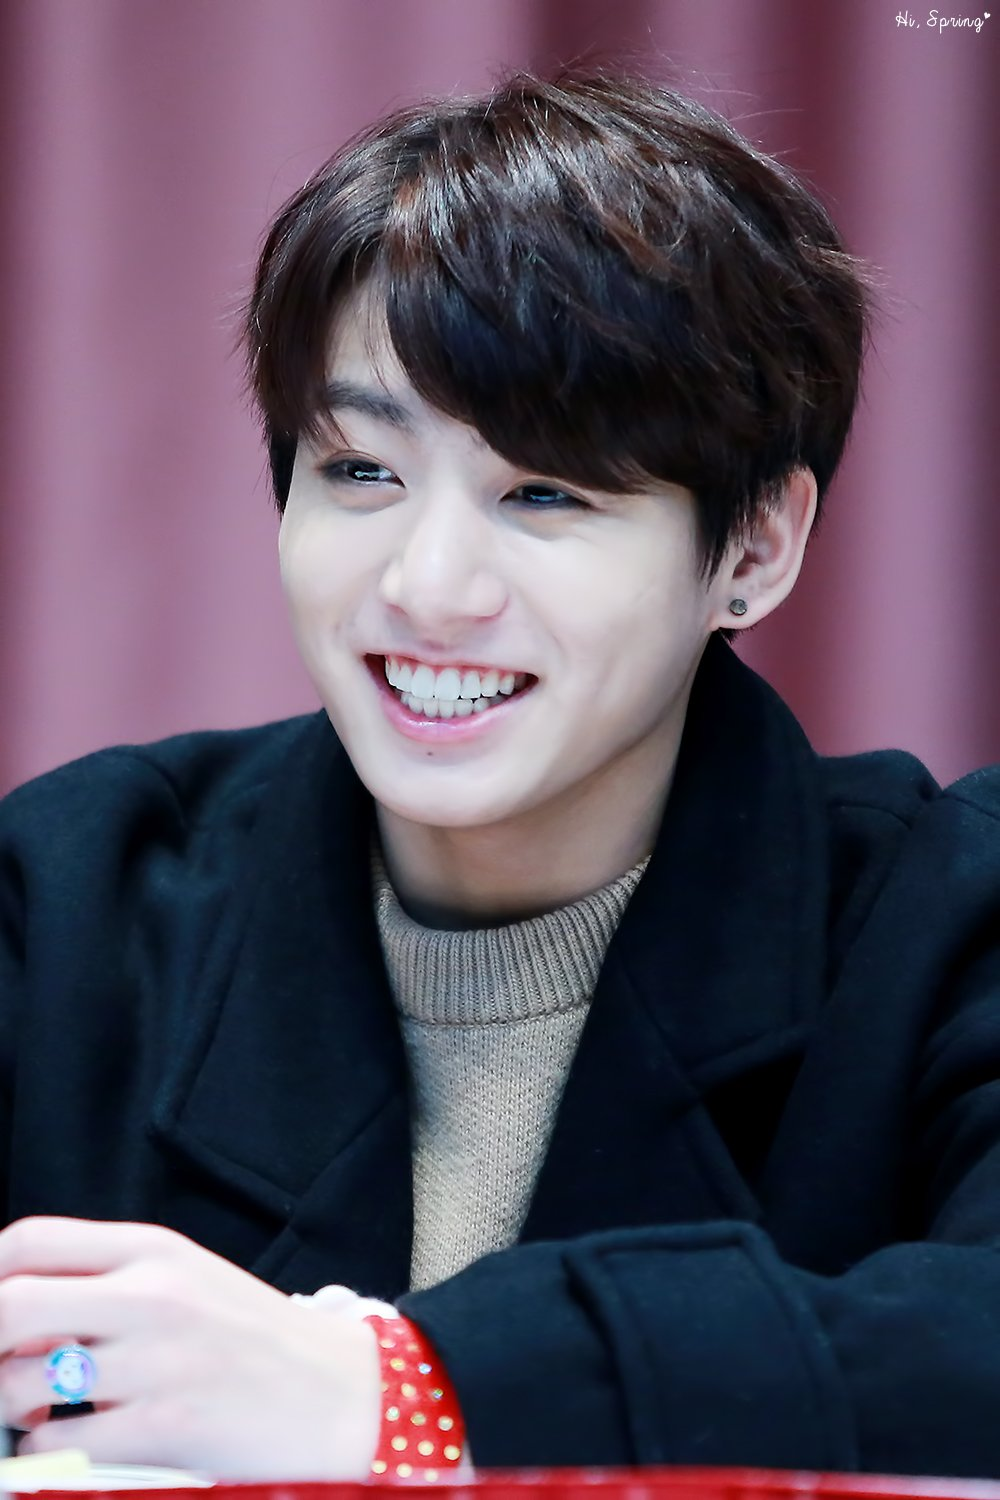 Jungkook Philippines On Twitter Quot Hq 151222 Jungkook